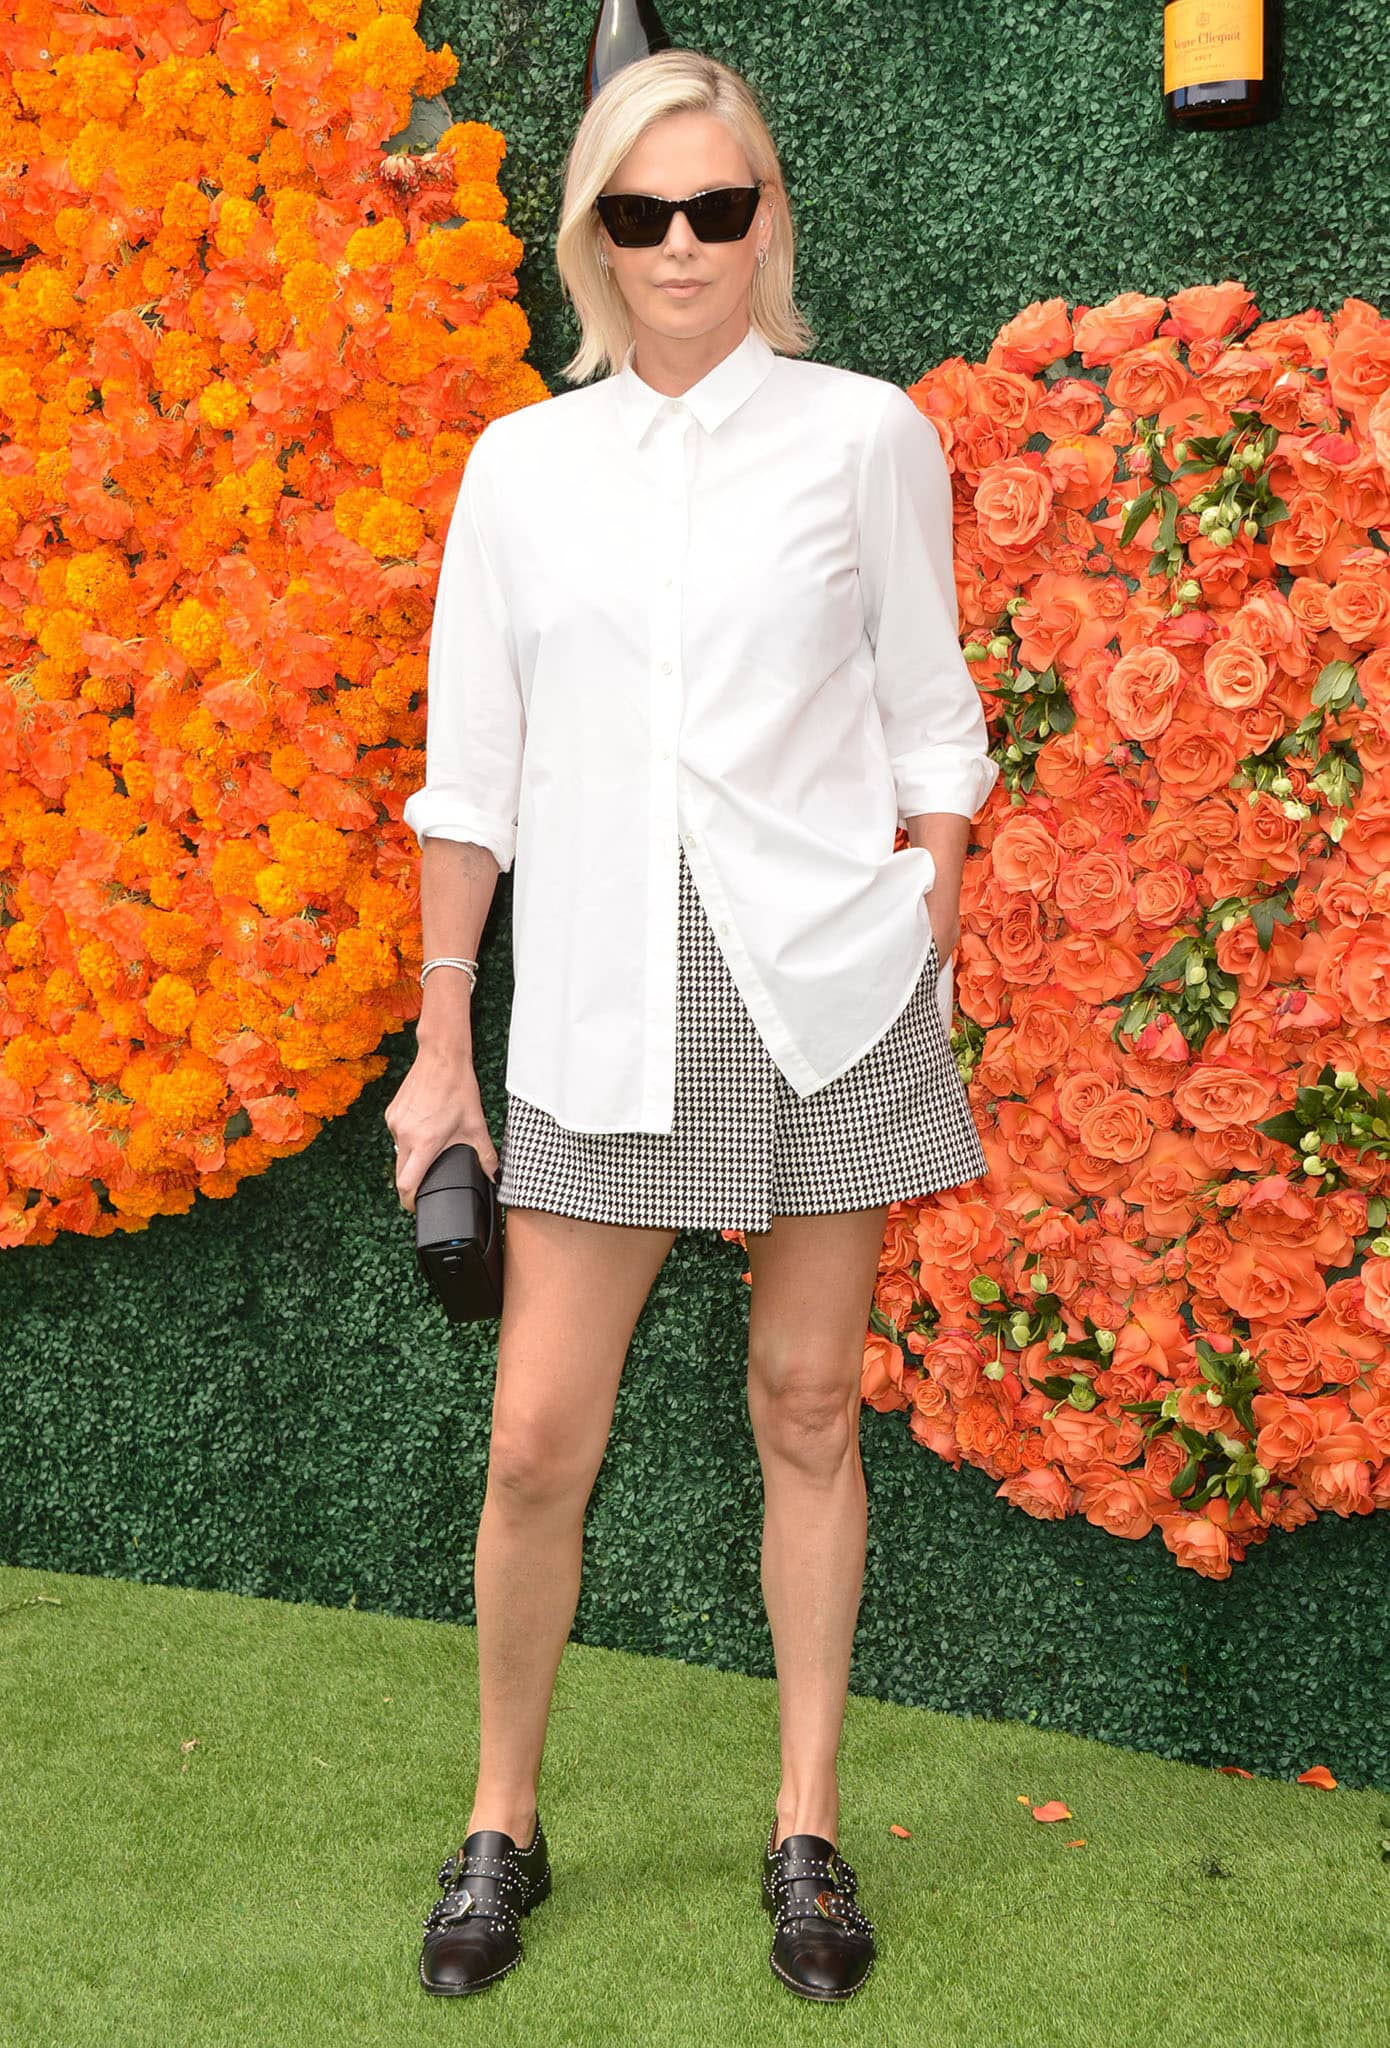 Charlize Theron in Givenchy monk strap shoes at the Veuve Clicquot Polo Classic Los Angeles